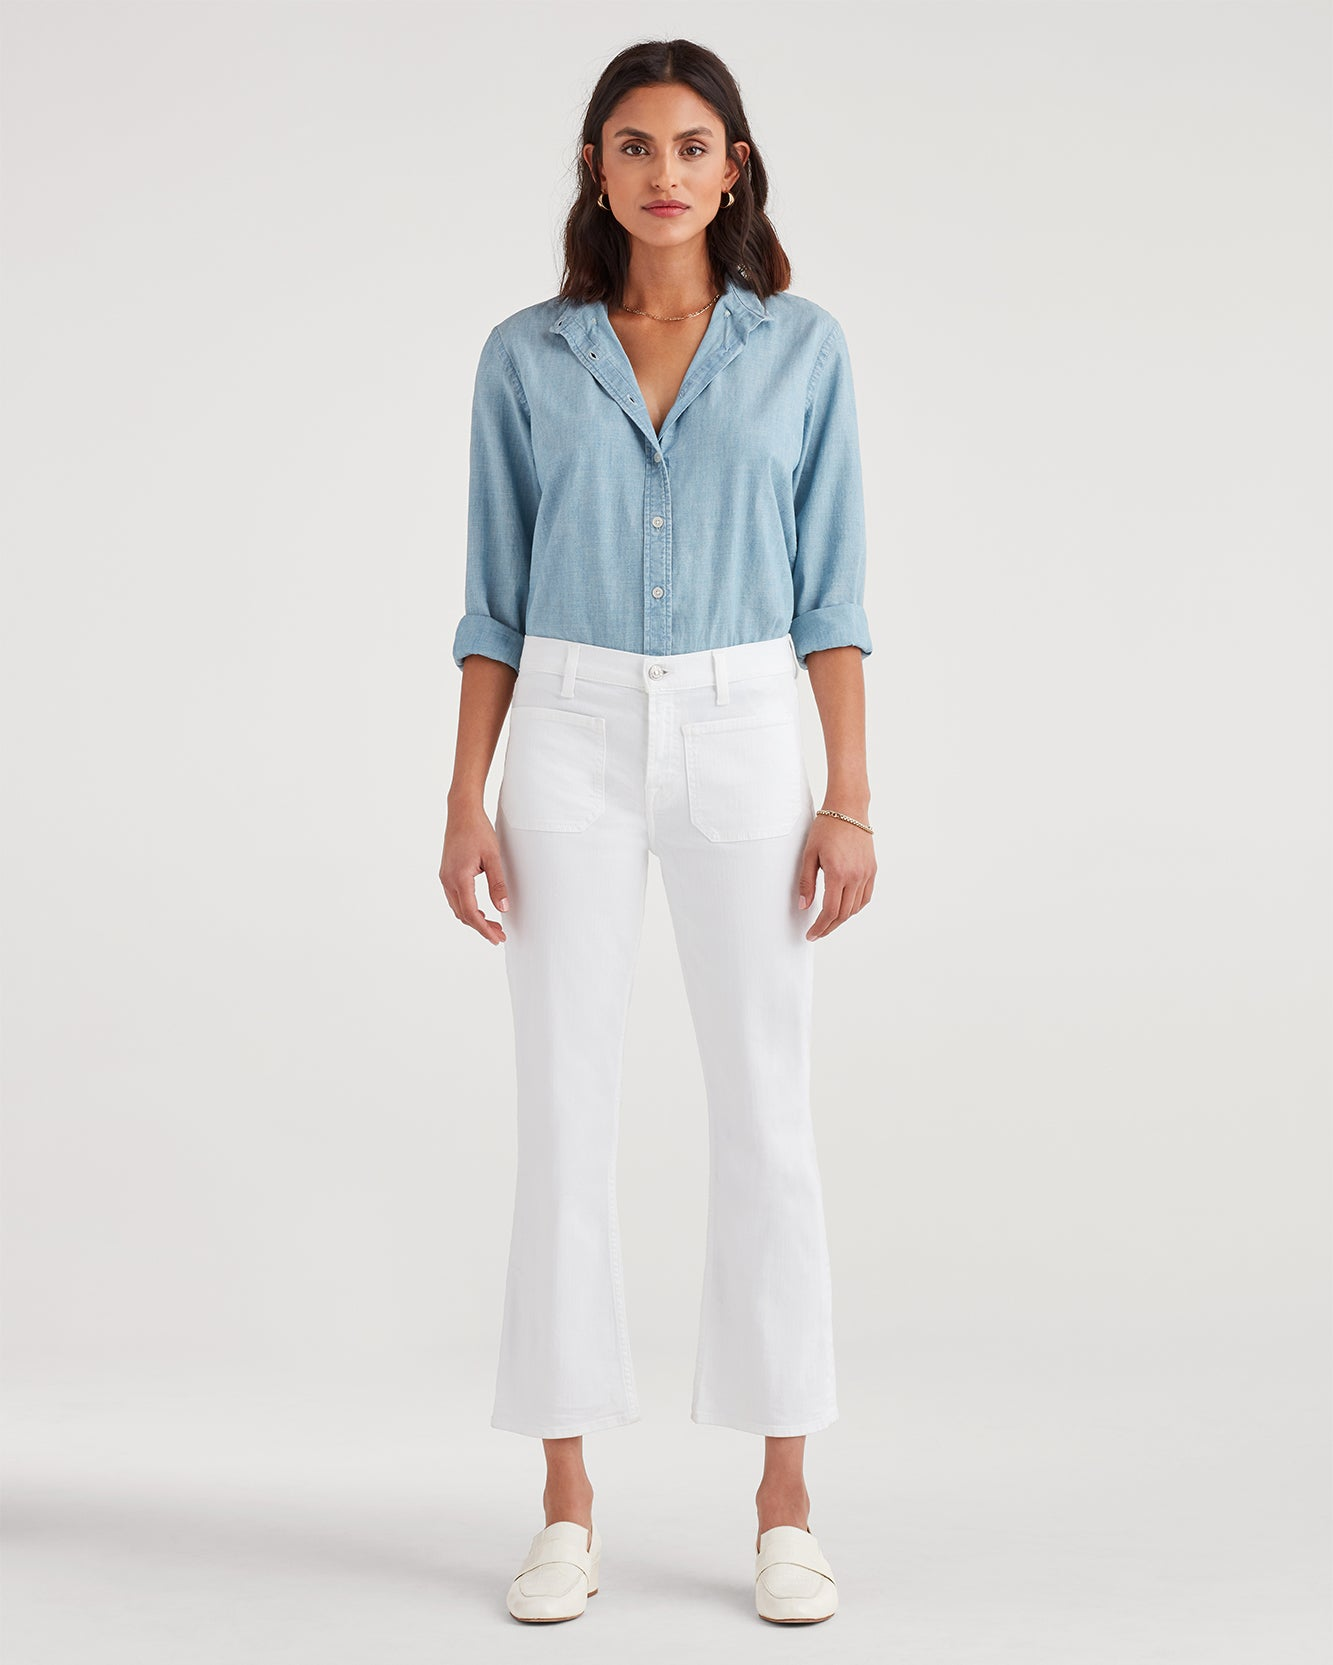 Image of High Waist Slim Kick with Front Pockets in White Runway